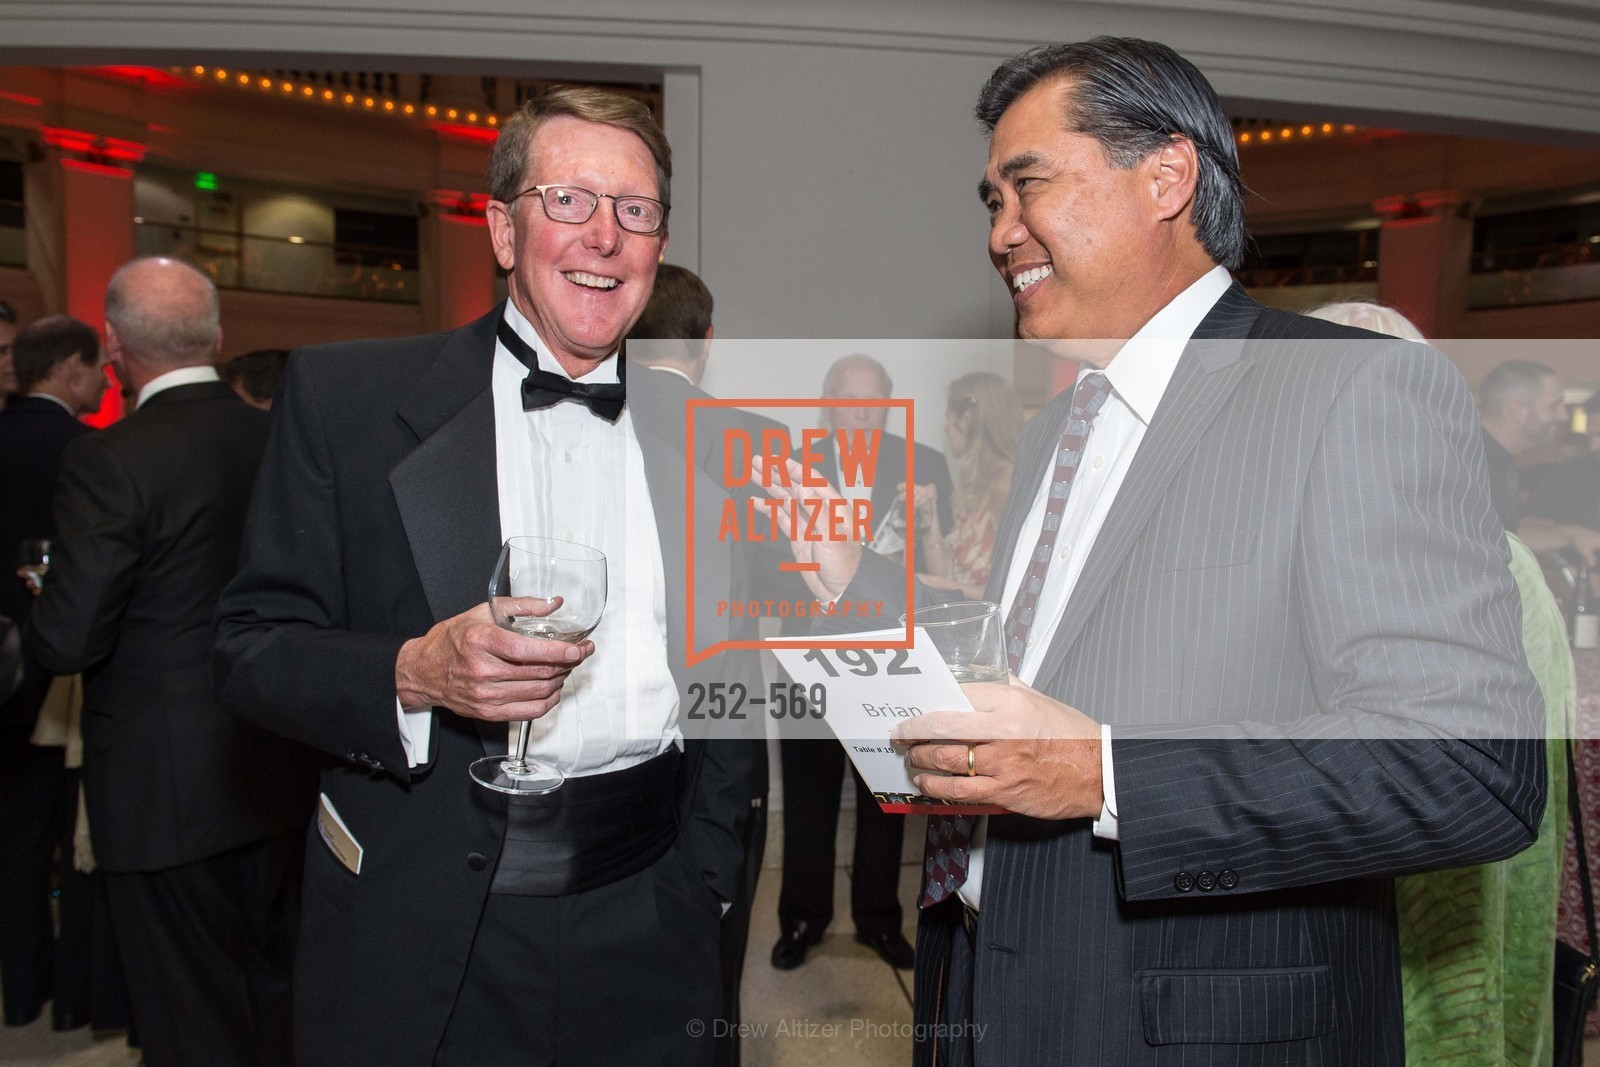 Brian Tong, CHABOT Science Center STARLIGHT GALA, US, September 20th, 2014,Drew Altizer, Drew Altizer Photography, full-service event agency, private events, San Francisco photographer, photographer California